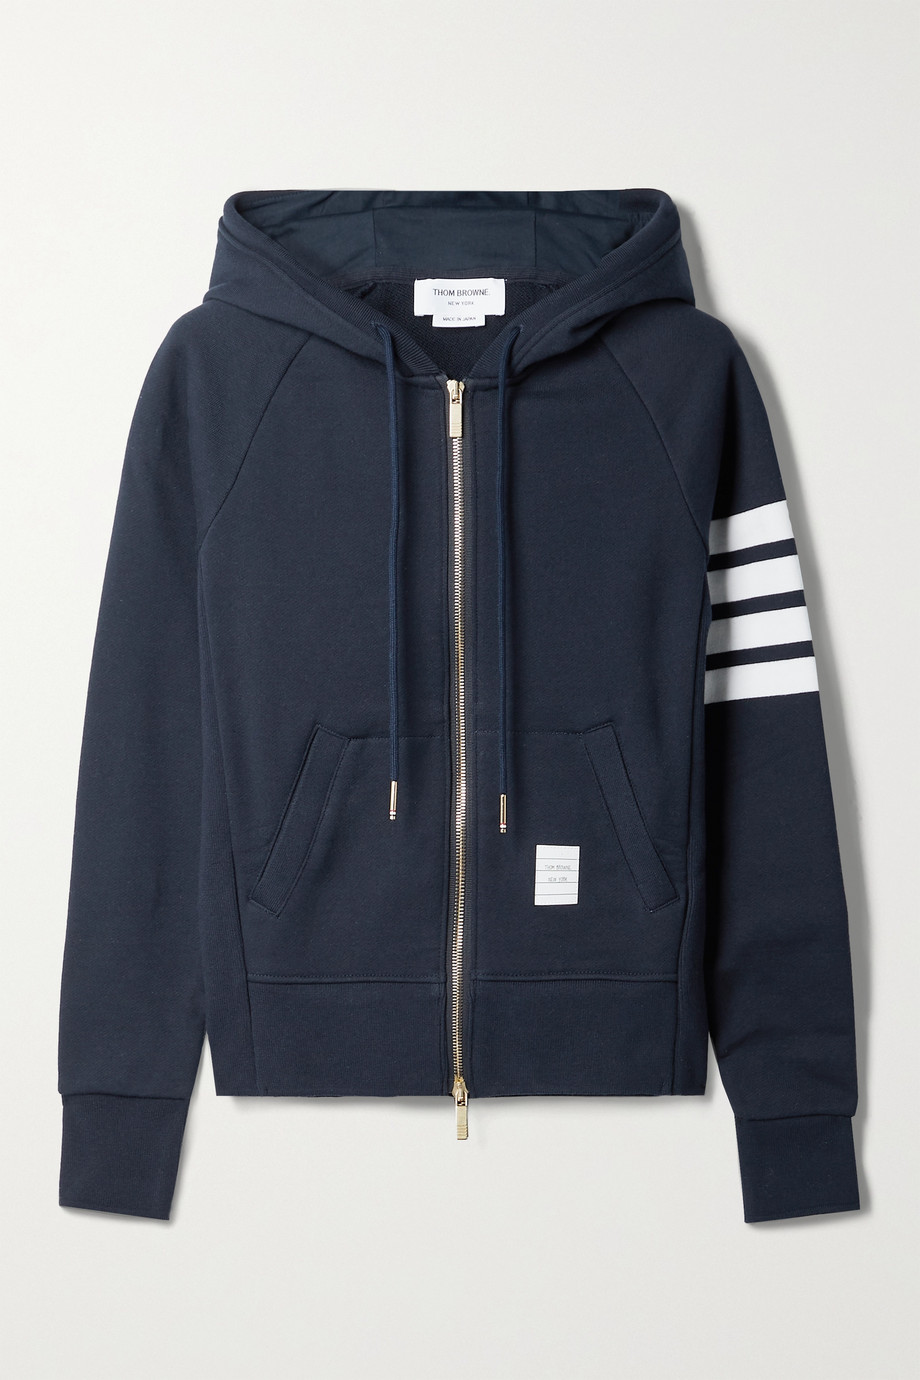 Thom Browne Striped cotton-jersey hoodie